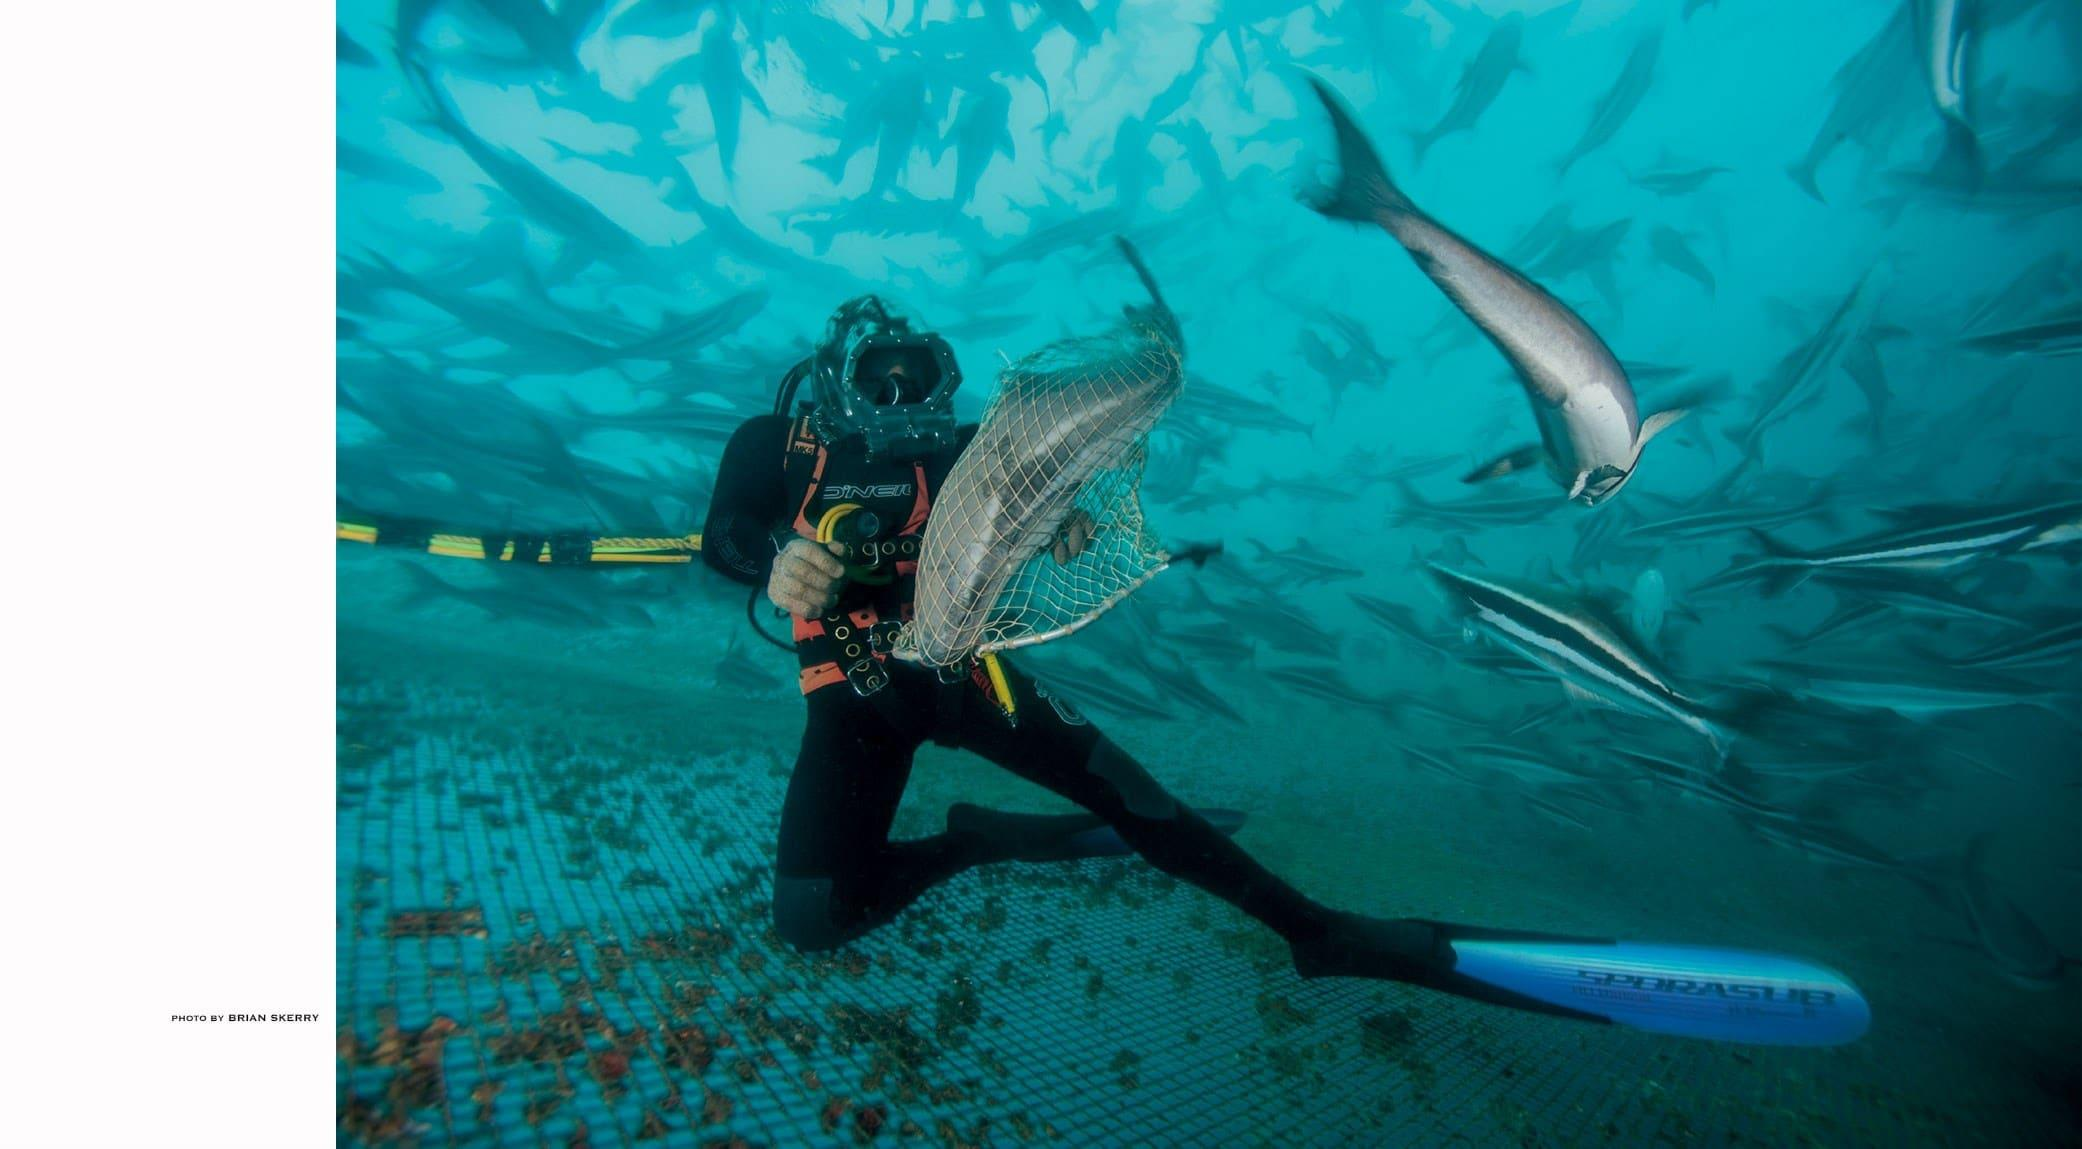 original_004-BRIAN-SKERRY-national-geographic-finedininglovers.jpg